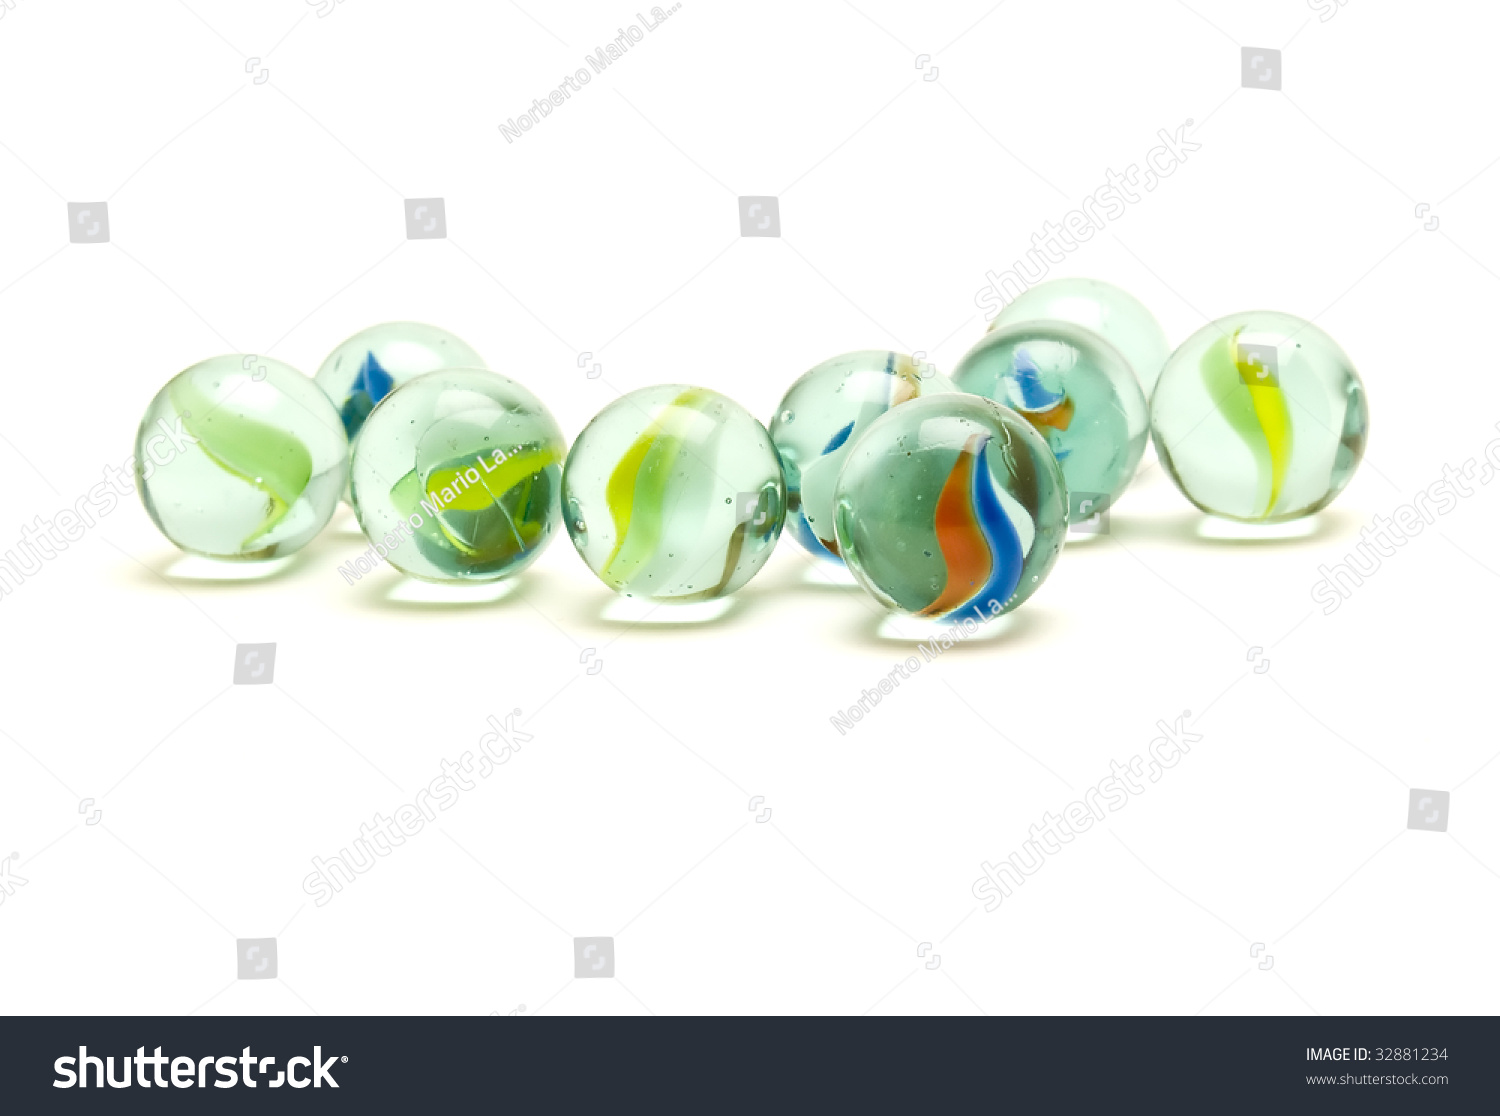 glass marbles #32881234